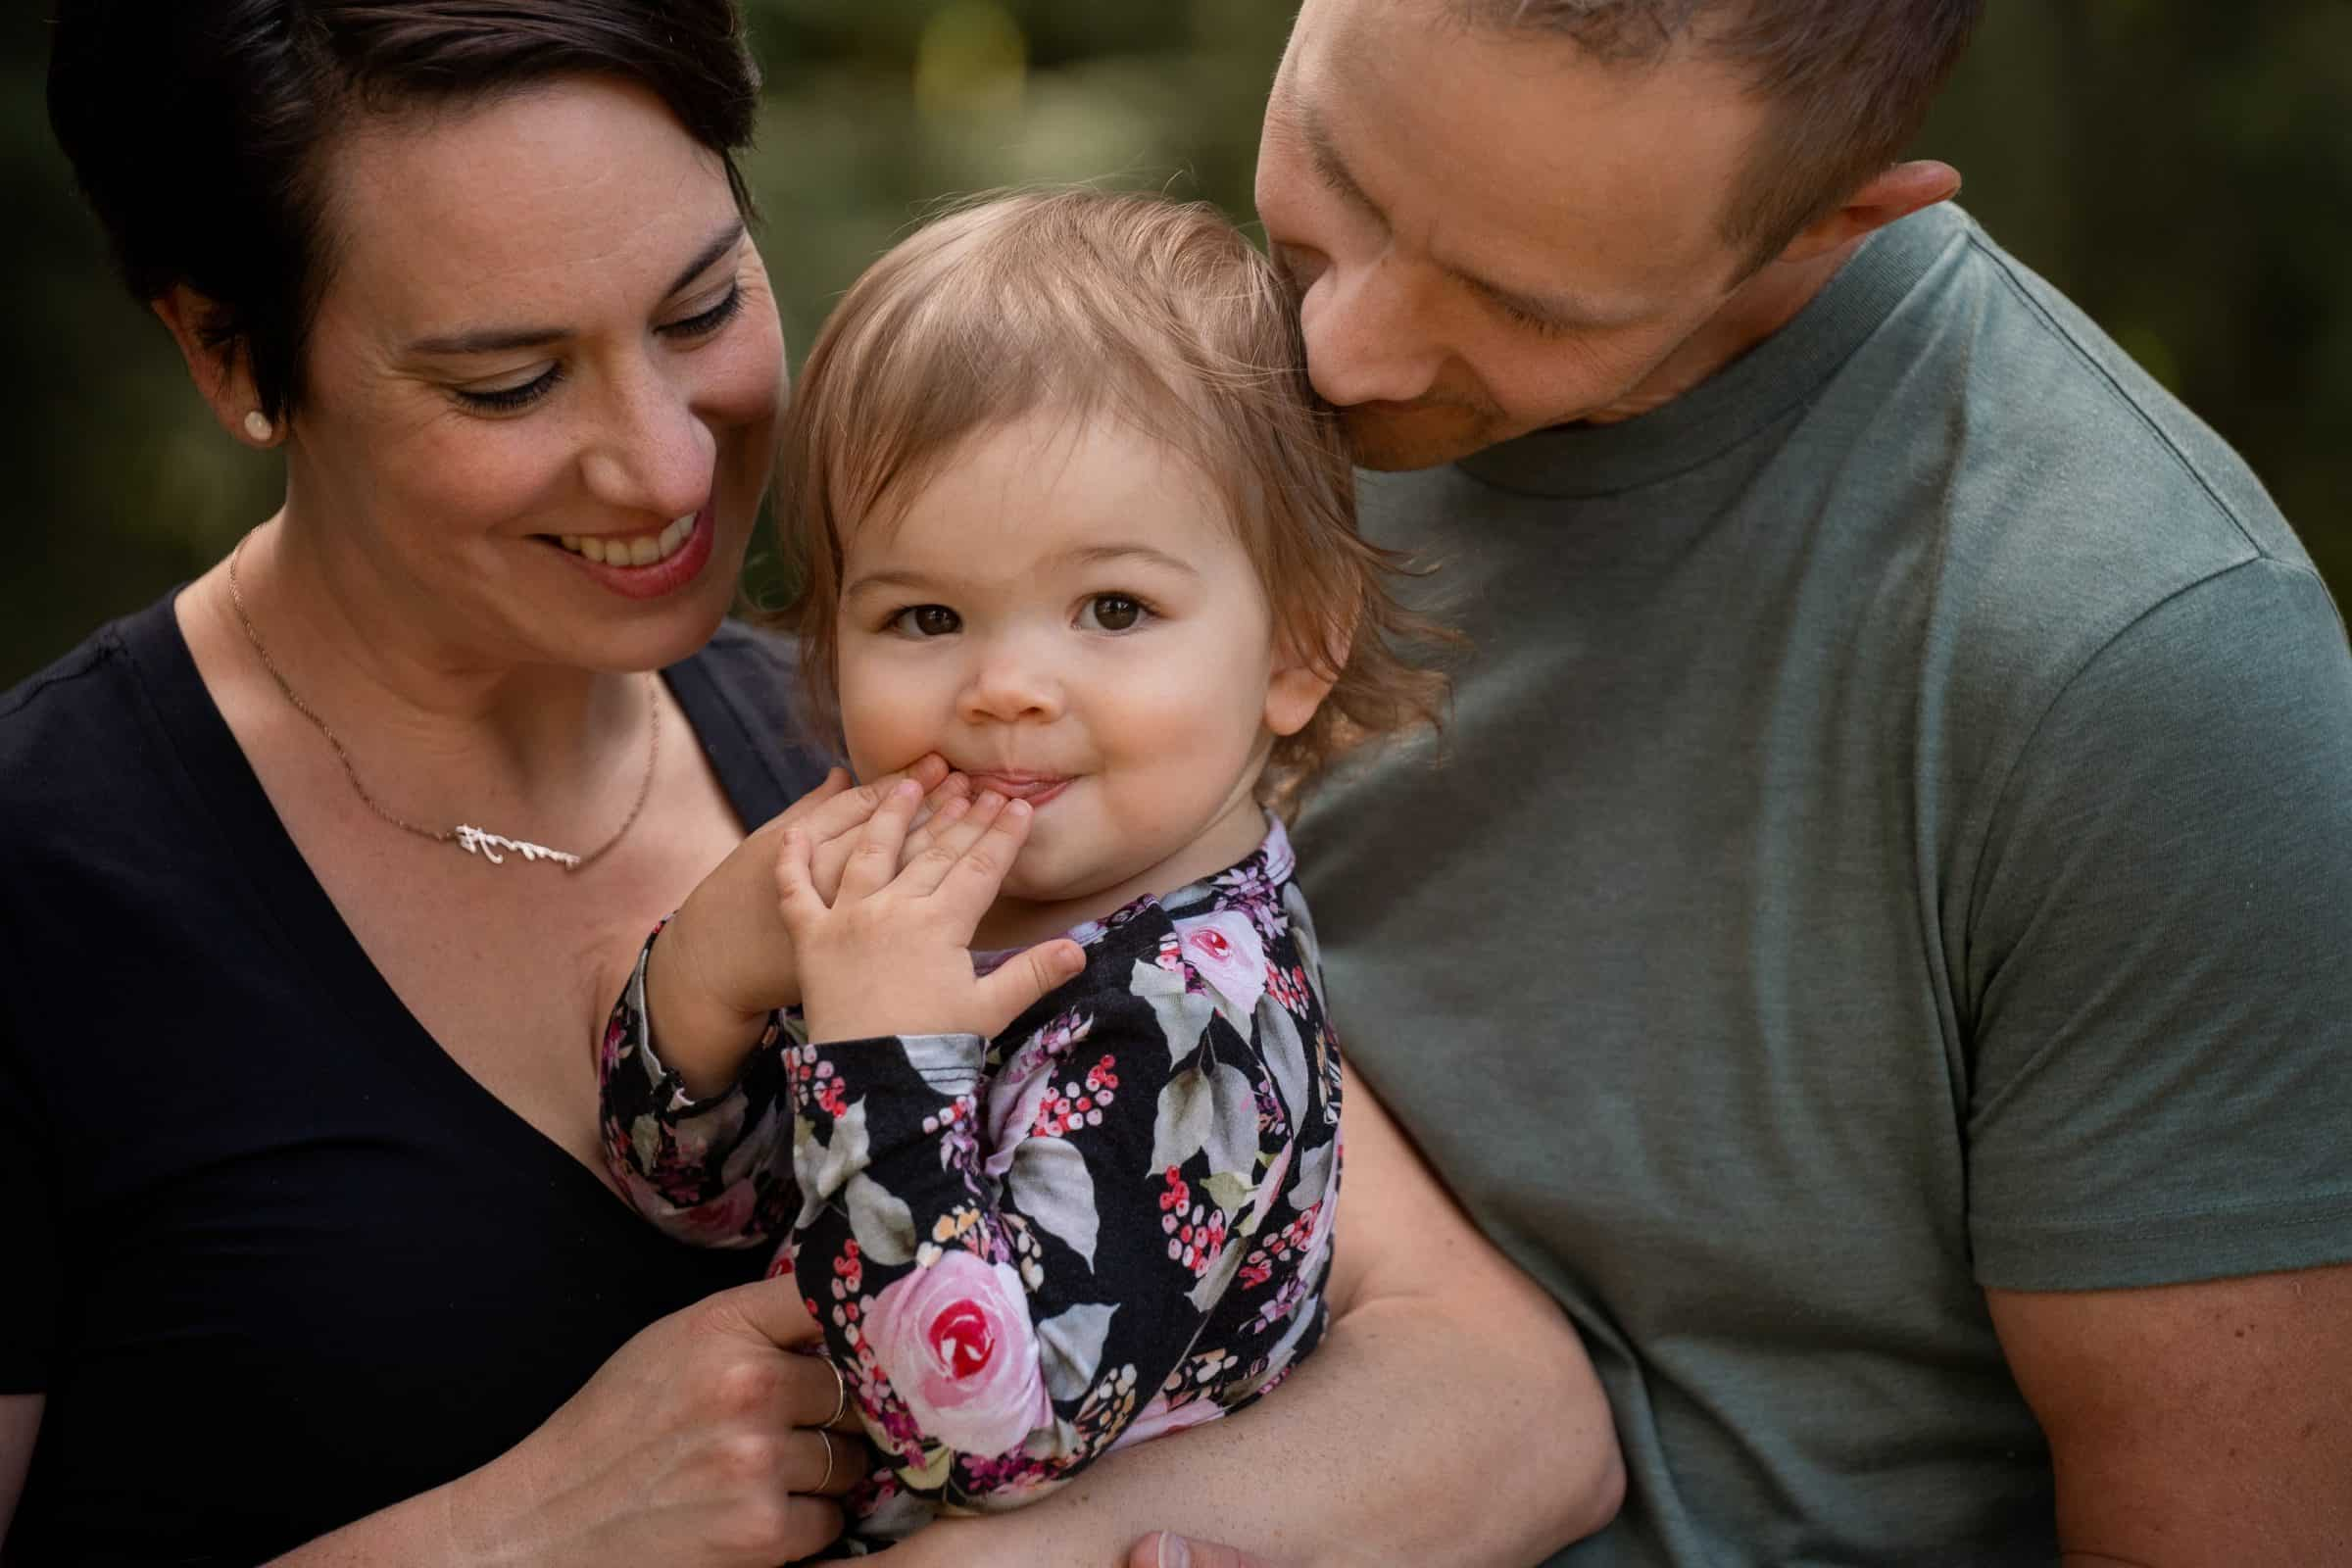 mom and dad holding toddler girl as she looks at camera